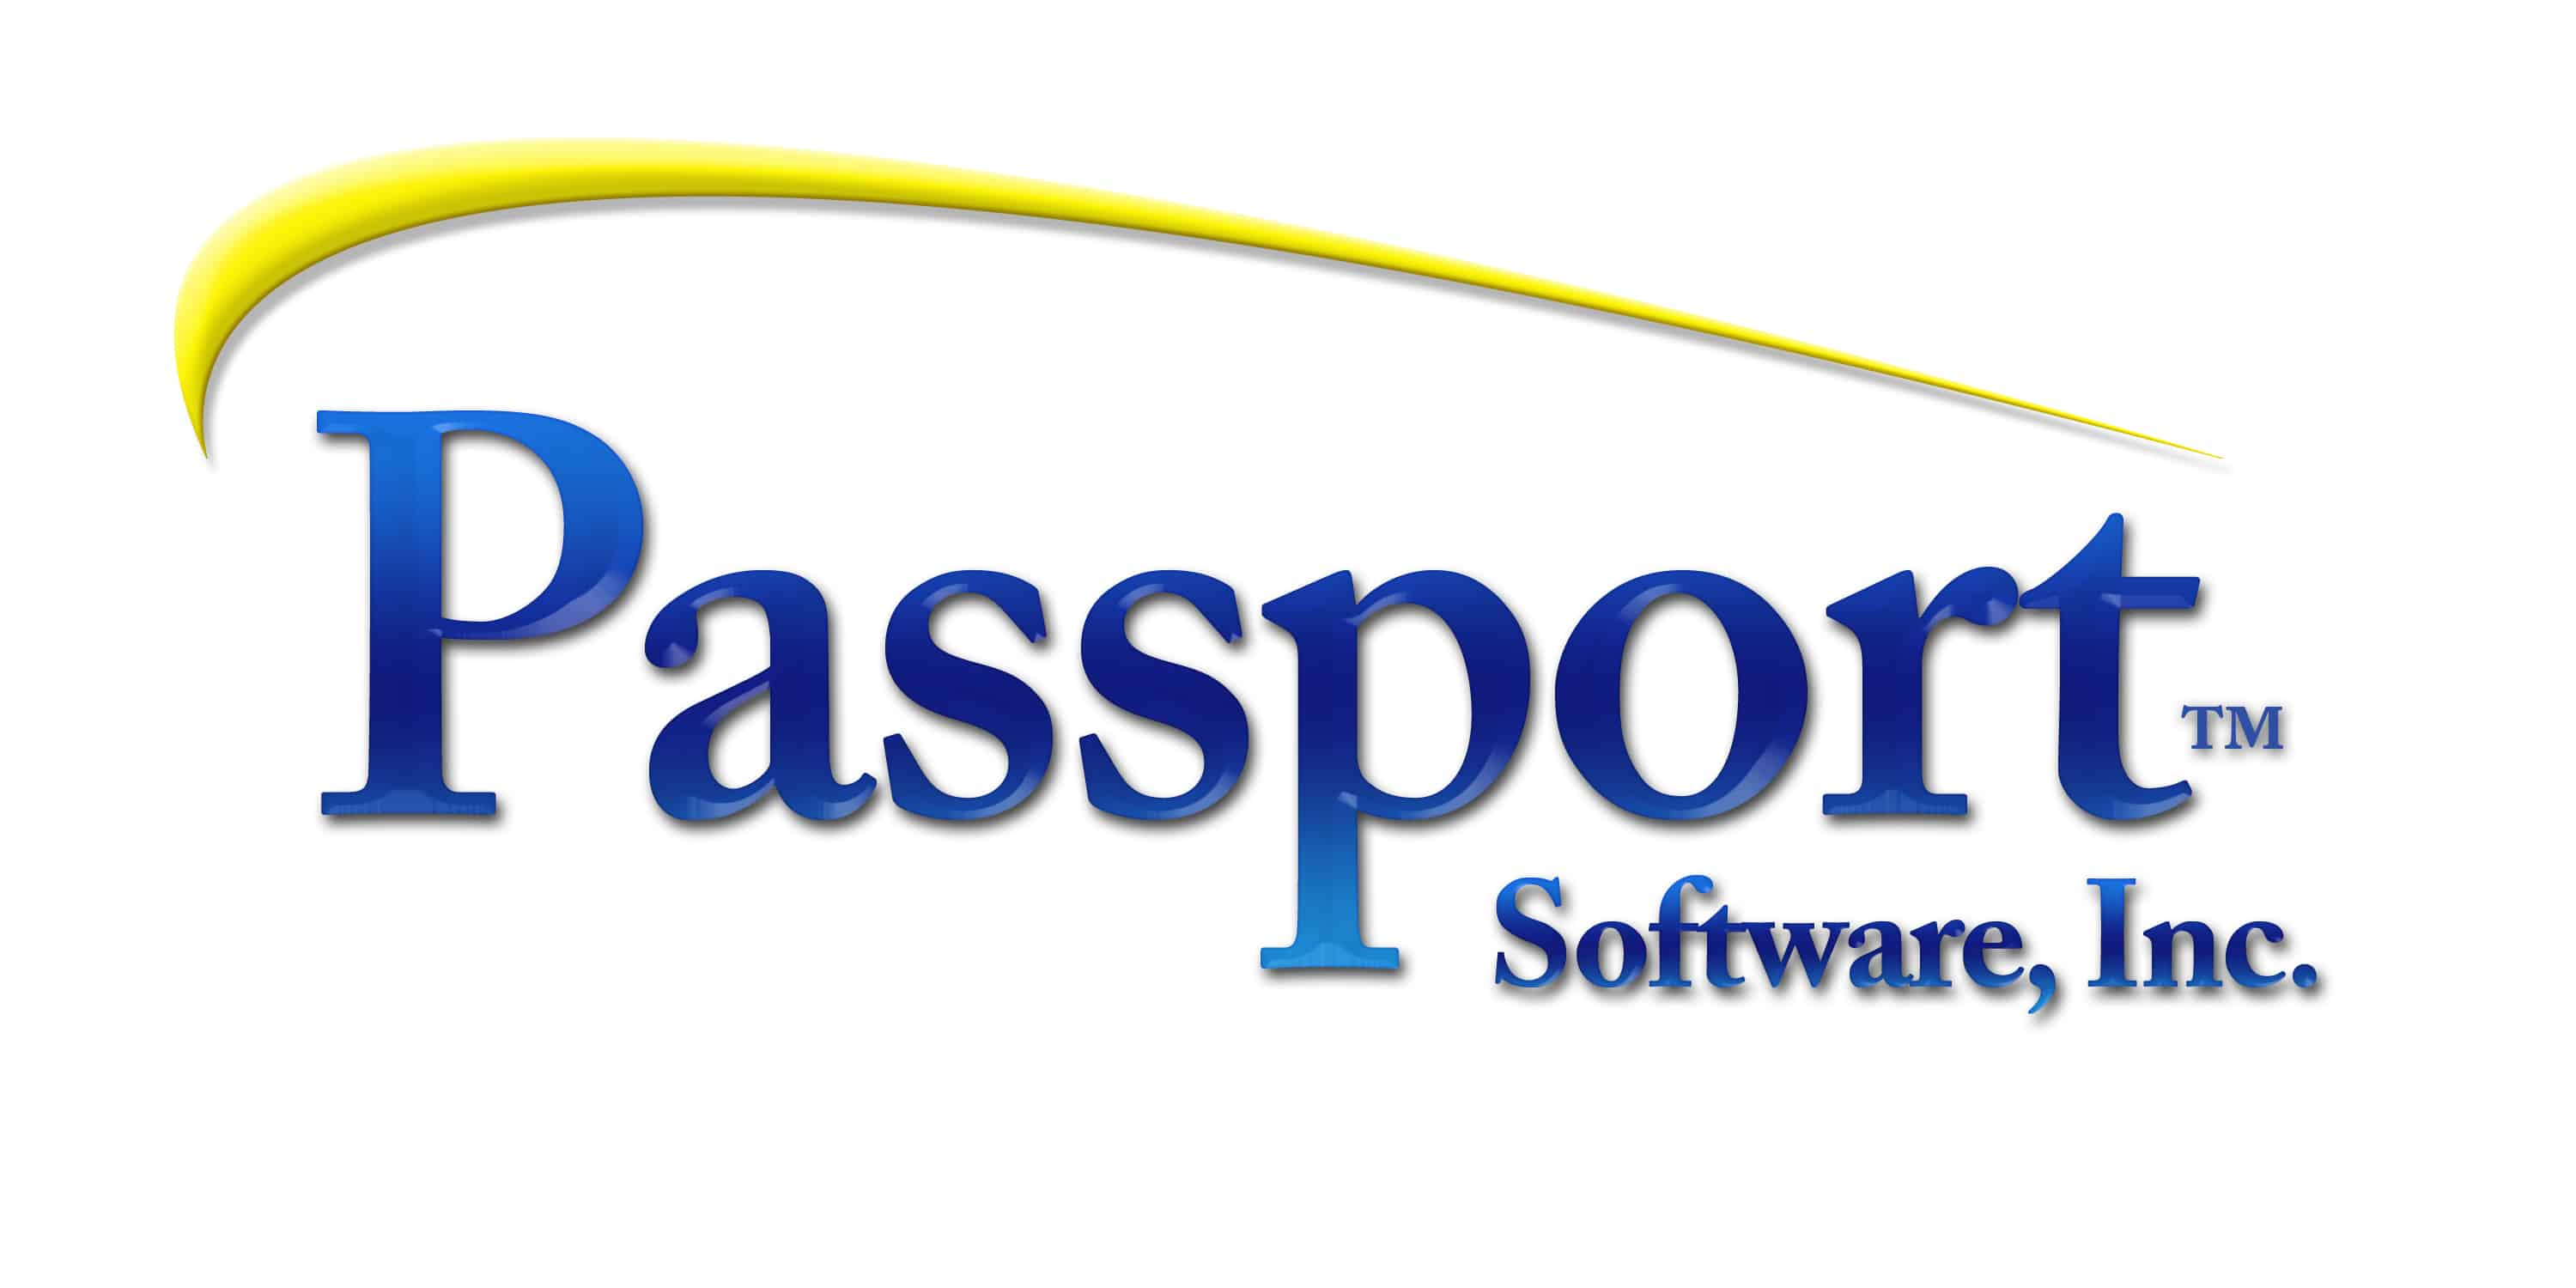 Passport Software large logo